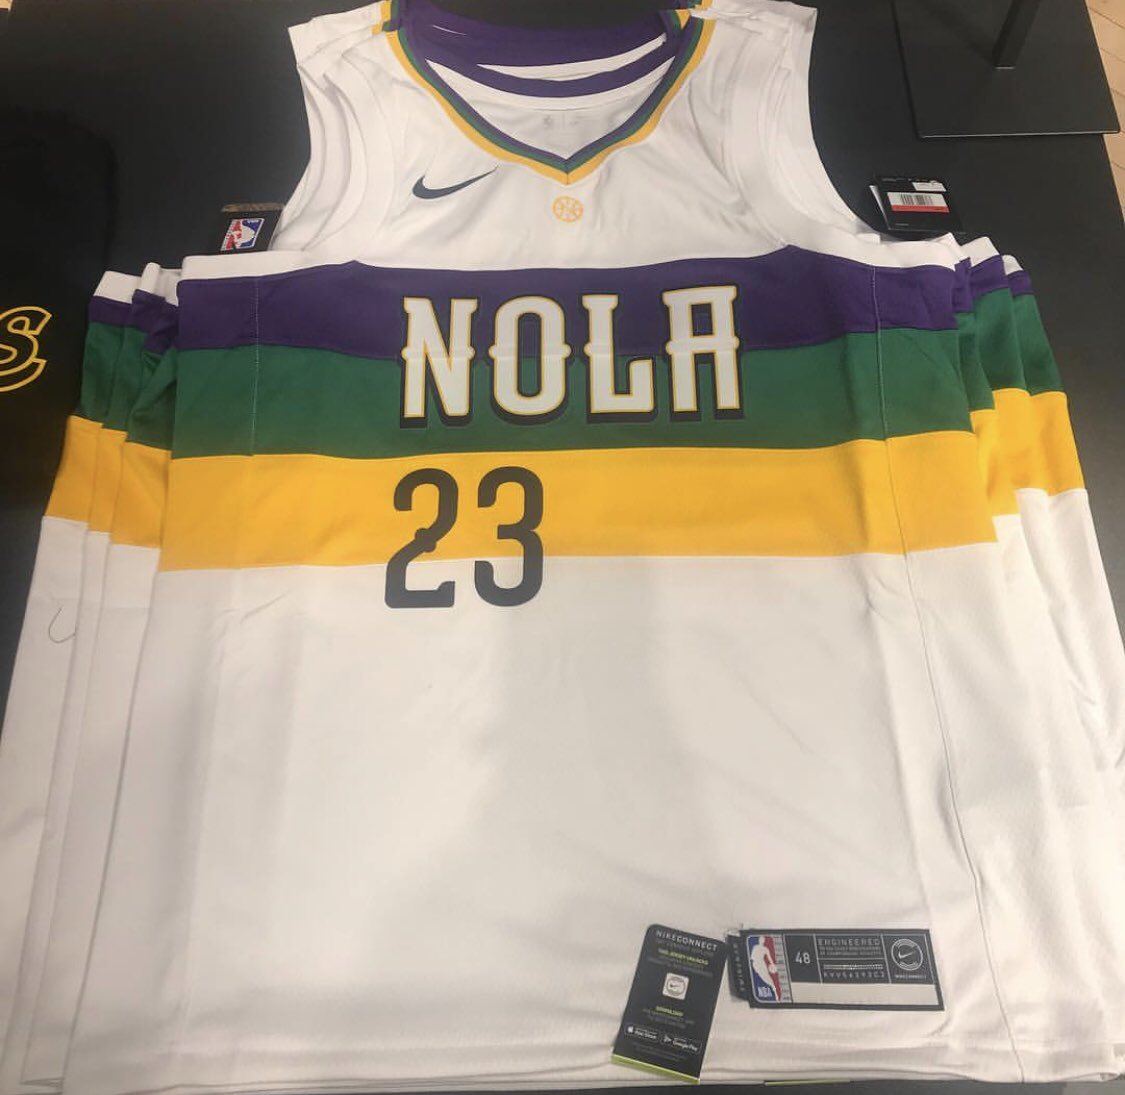 """7ce25e21 The Lakers' """"City Edition"""" uniforms were leaked in the past week or so, and  have made a debut in a retail store. LeBron James is set to rock purple ..."""